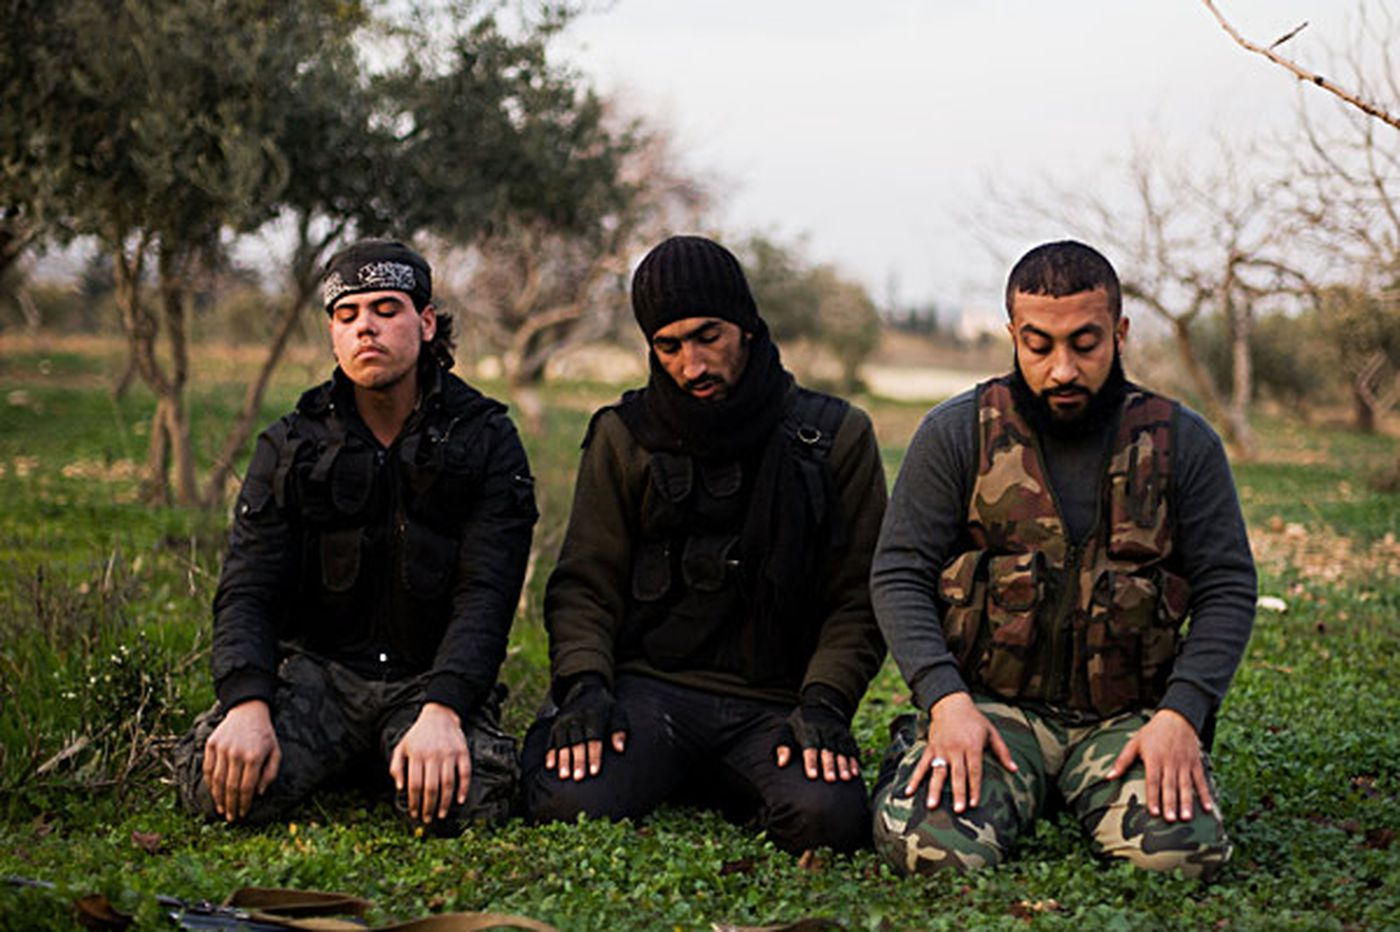 Syrian rebels say Britain and U.S. helped train them